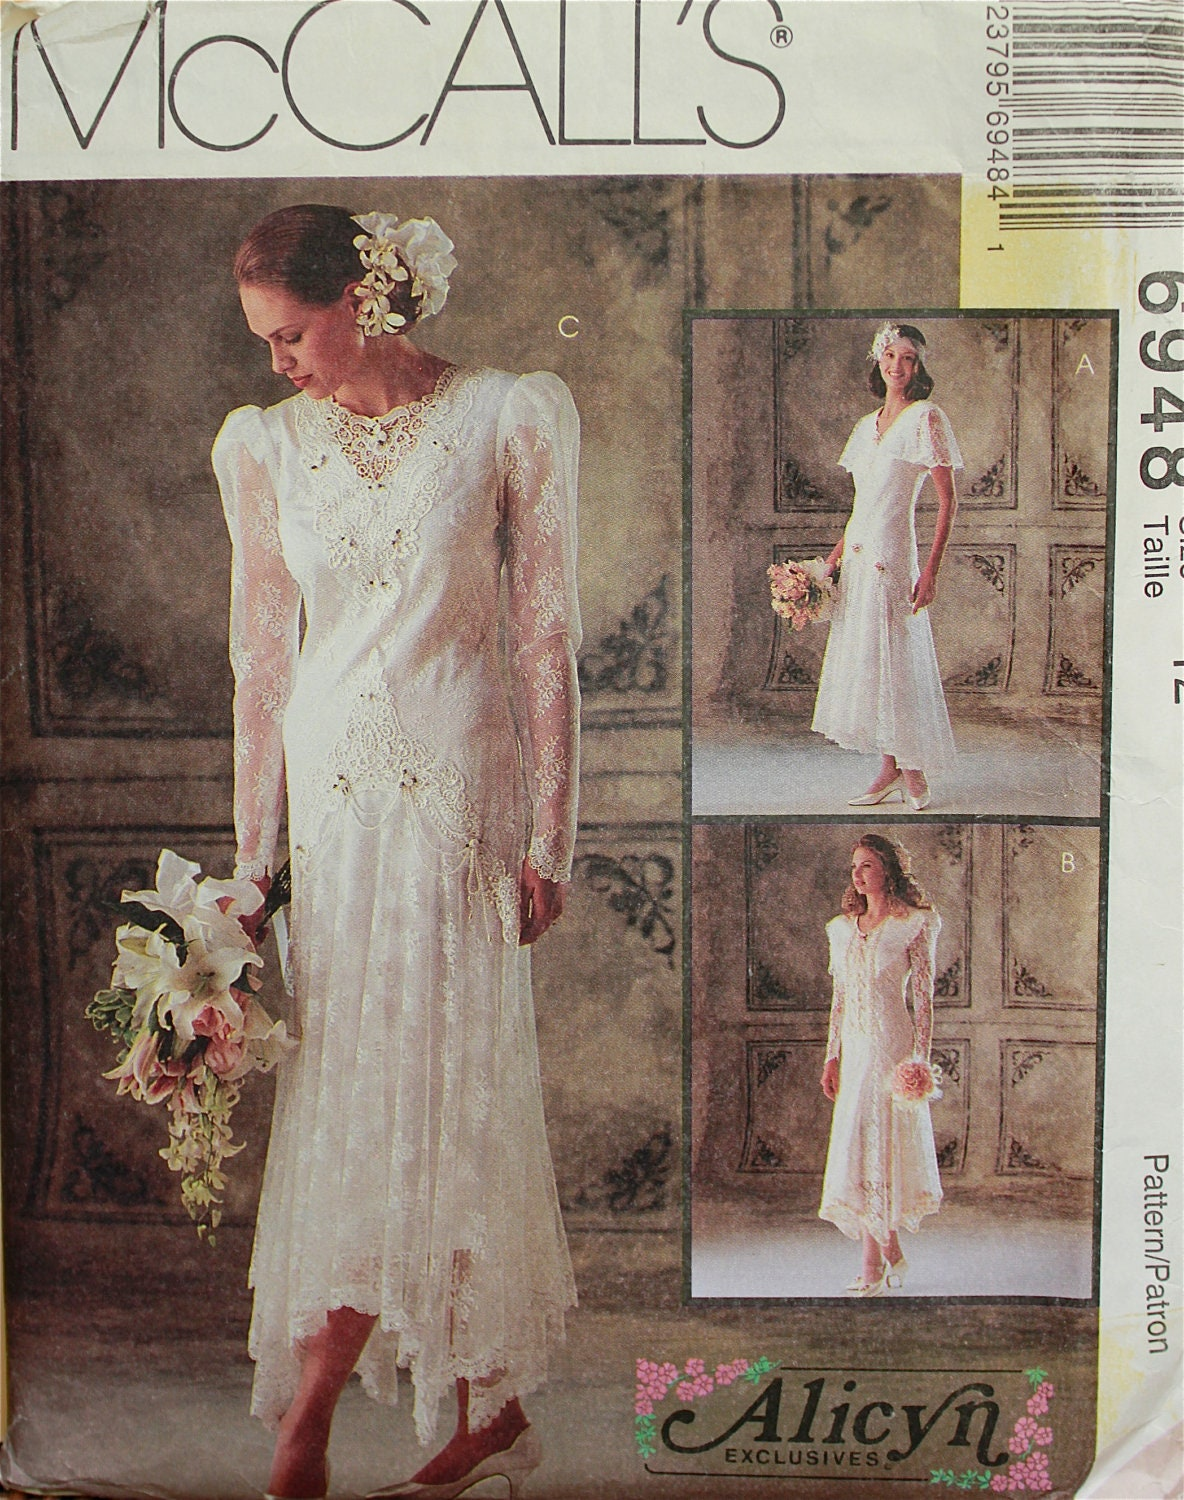 1990s Designer Dress Lace Flapper 1920s Style by Alicyn